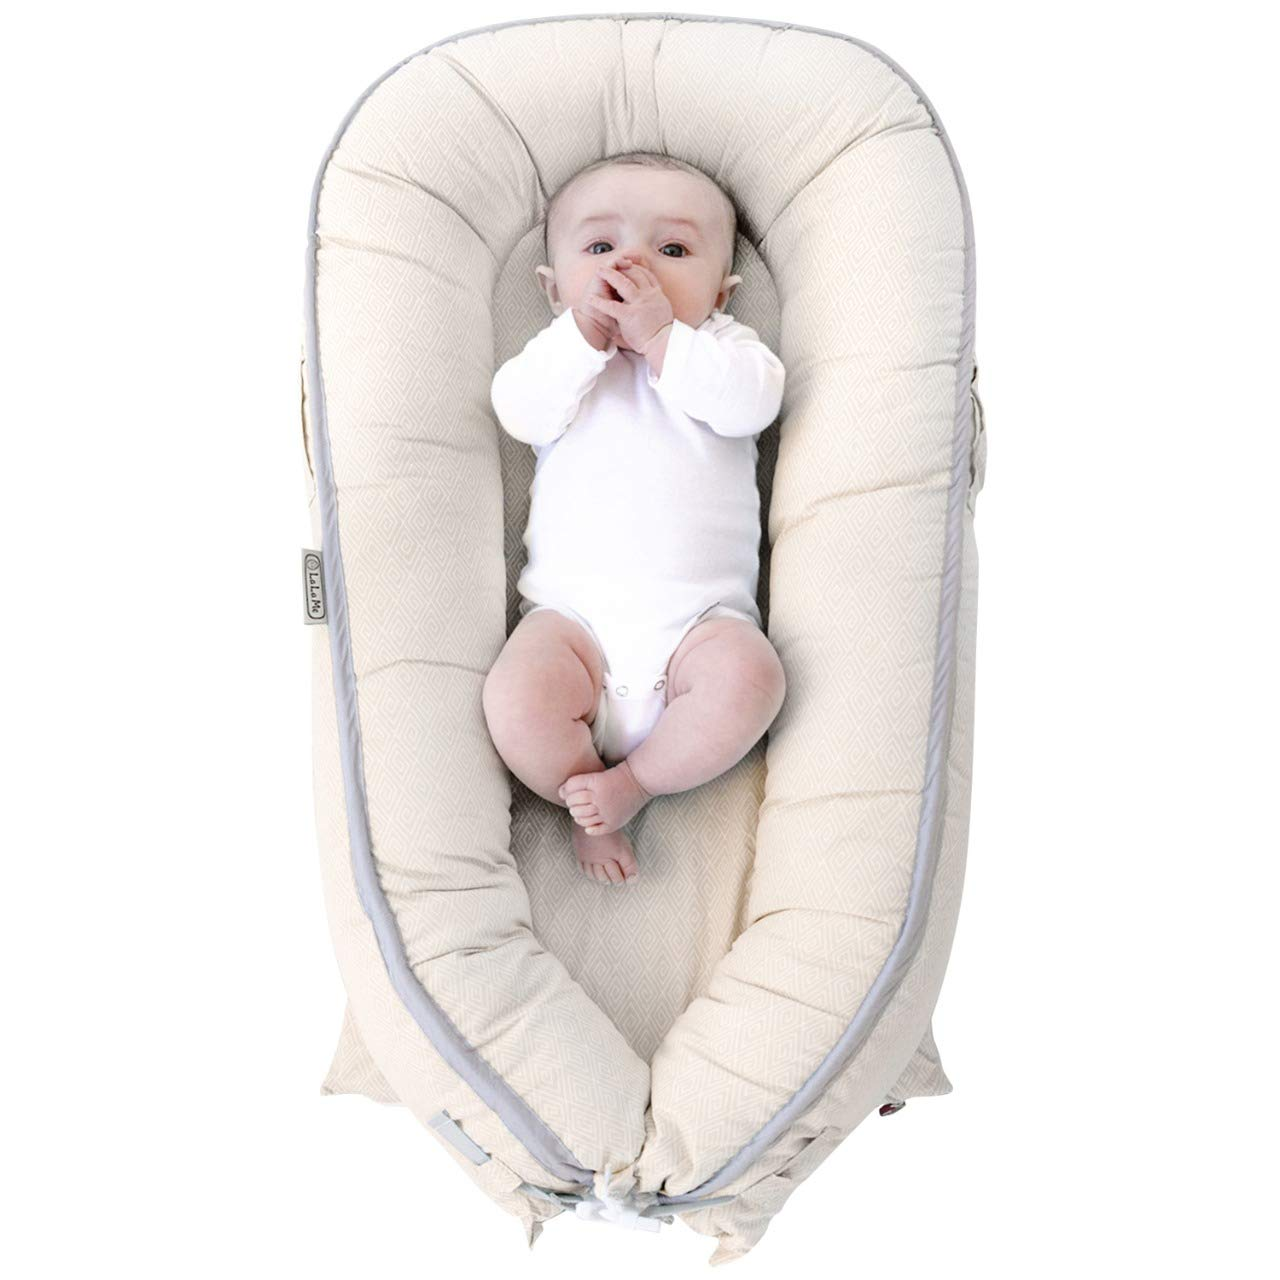 LaLaMe 100 Organic Cotton Newborn Lounger Water-Resistant Baby Nest